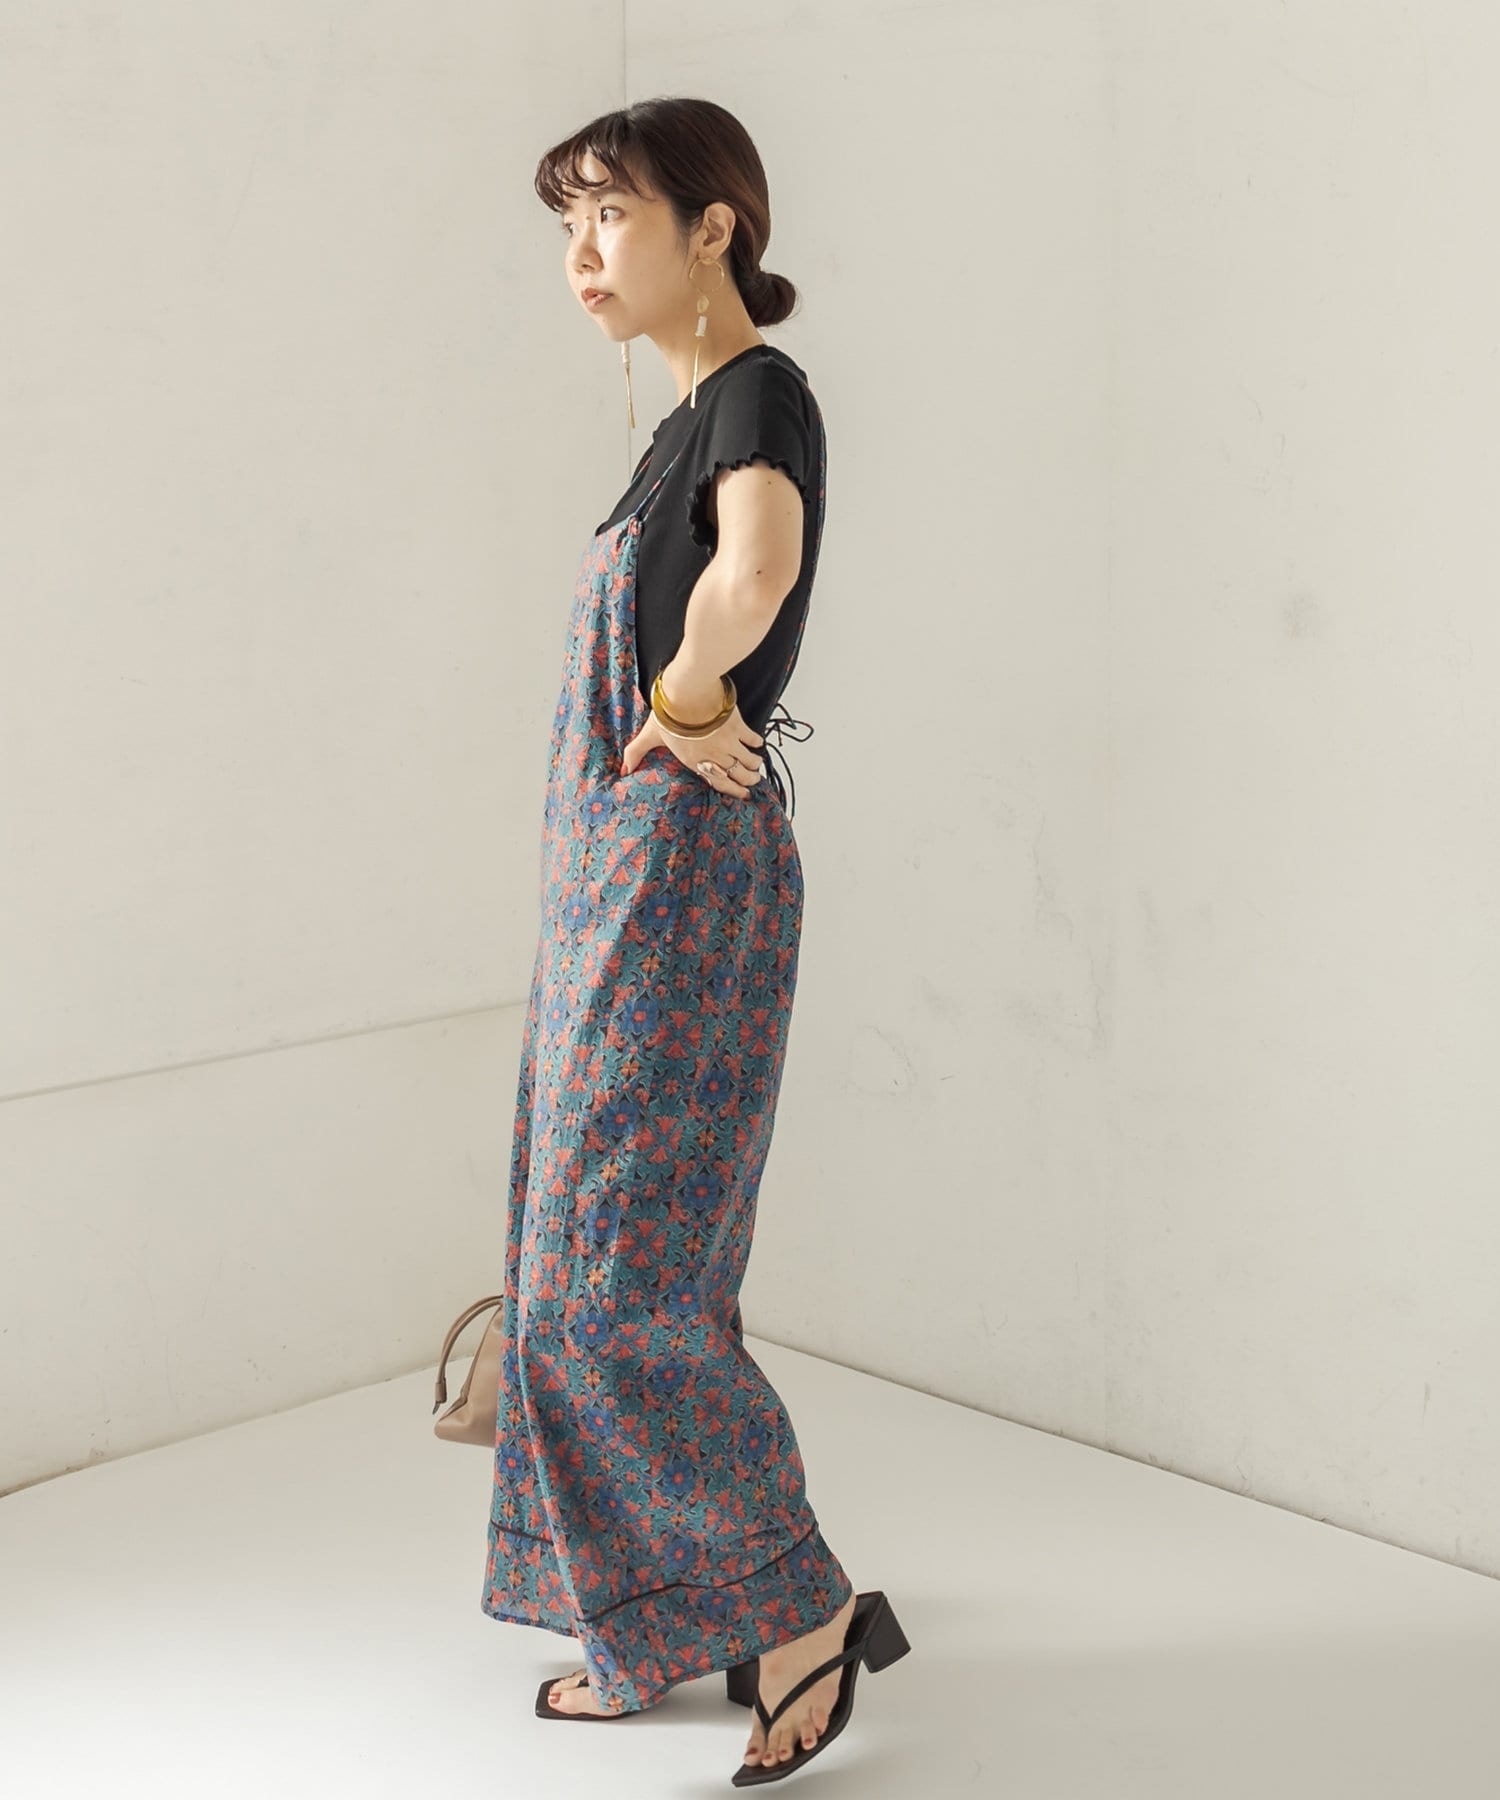 CAPRICIEUX LE'MAGE(カプリシュレマージュ) 〈WEB限定/イエロー〉メキシカン柄サロペット